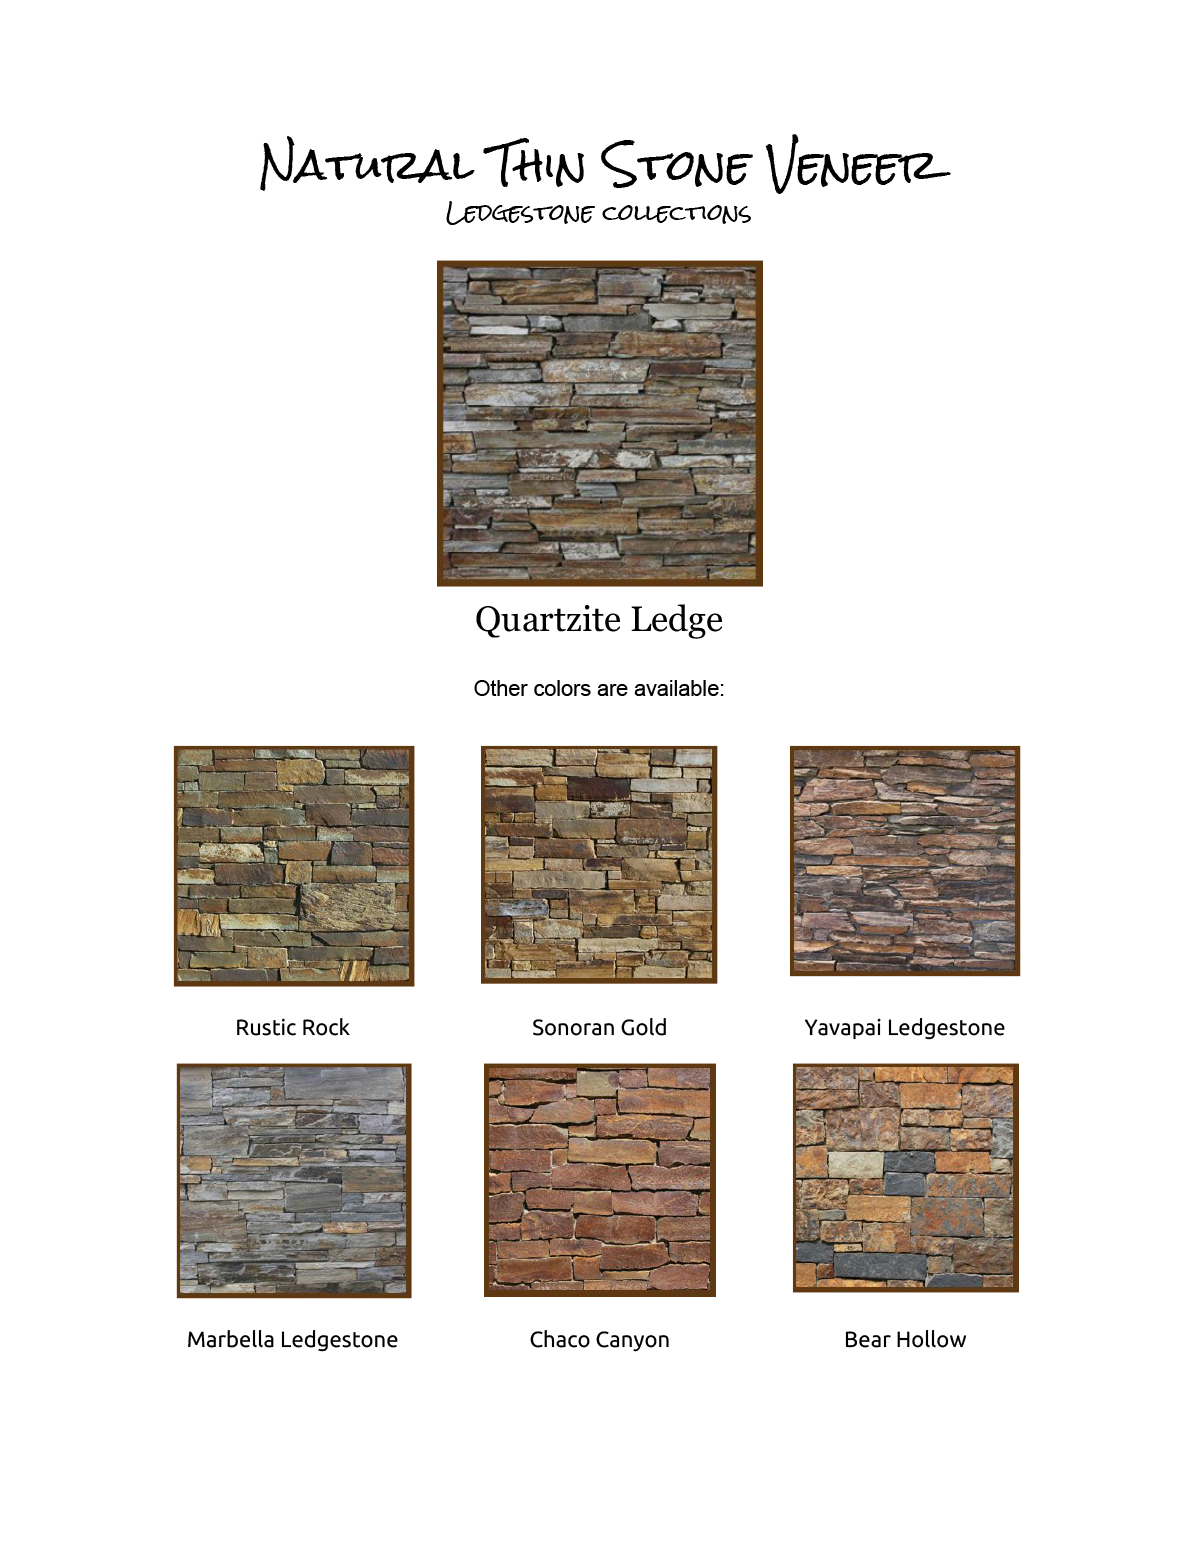 Natural Thin Stone Veneers